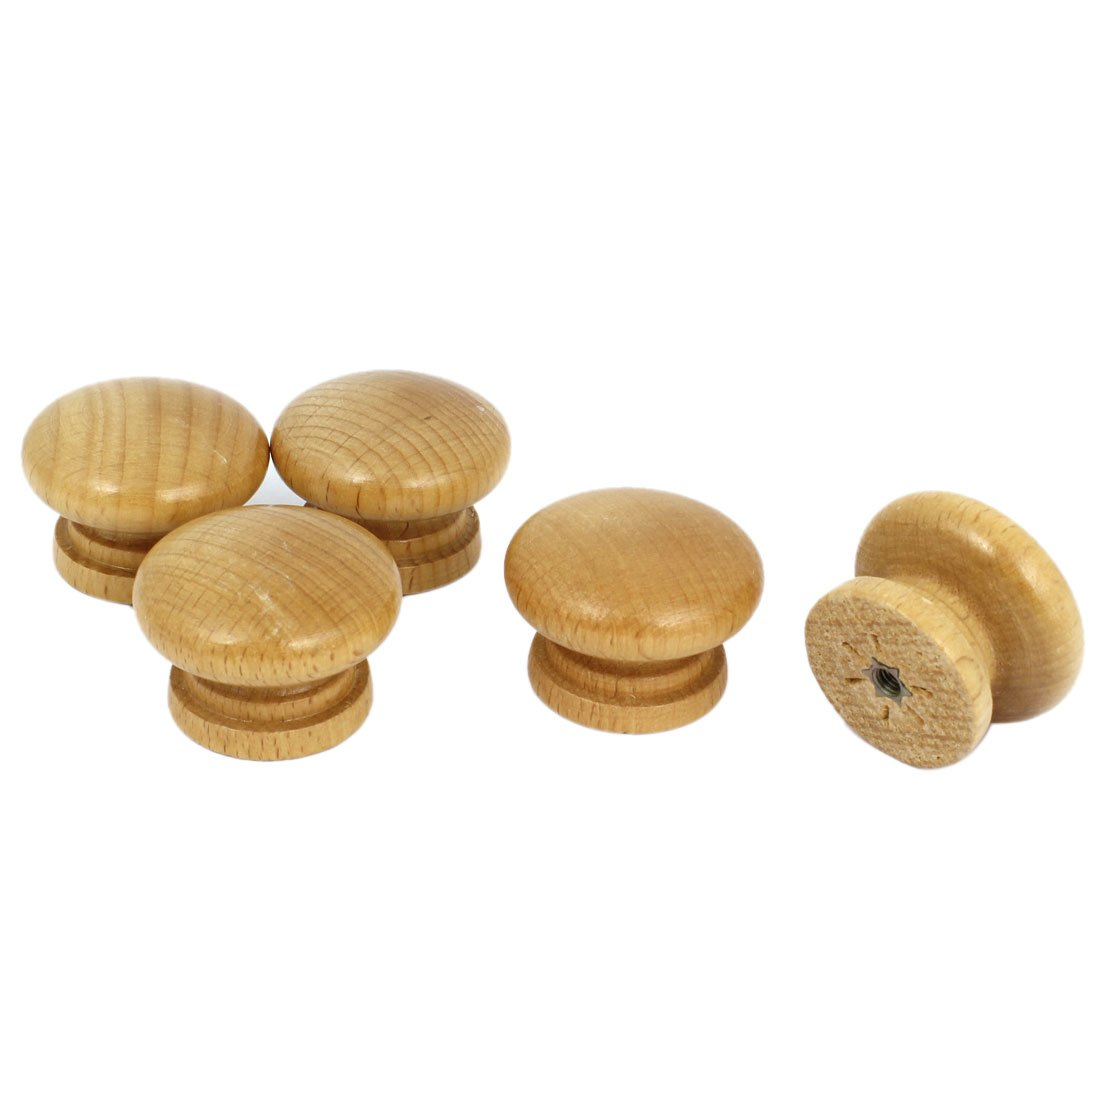 Cabinet Drawer Cupboard Round Shape Wooden Pull Knob Grip 5 Pcs uxcell a14111800ux0495